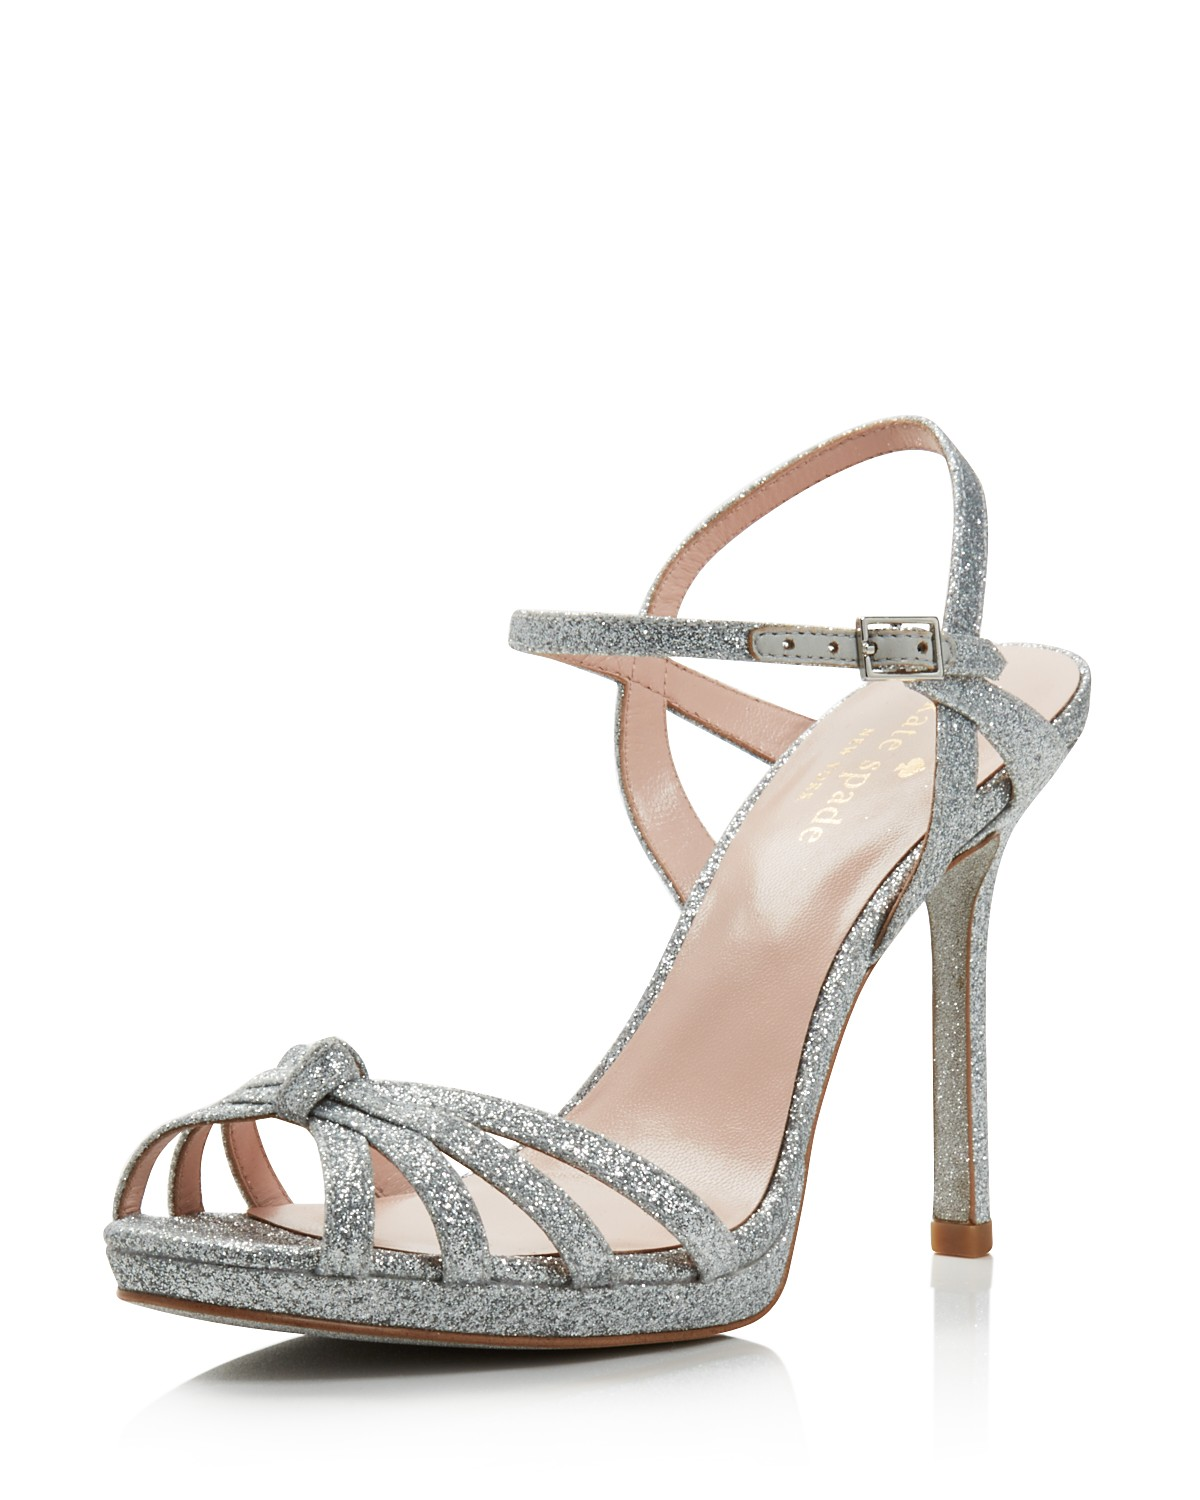 Kate Spade New York Women's Florence Glittered Leather High-Heel Sandals ziemp